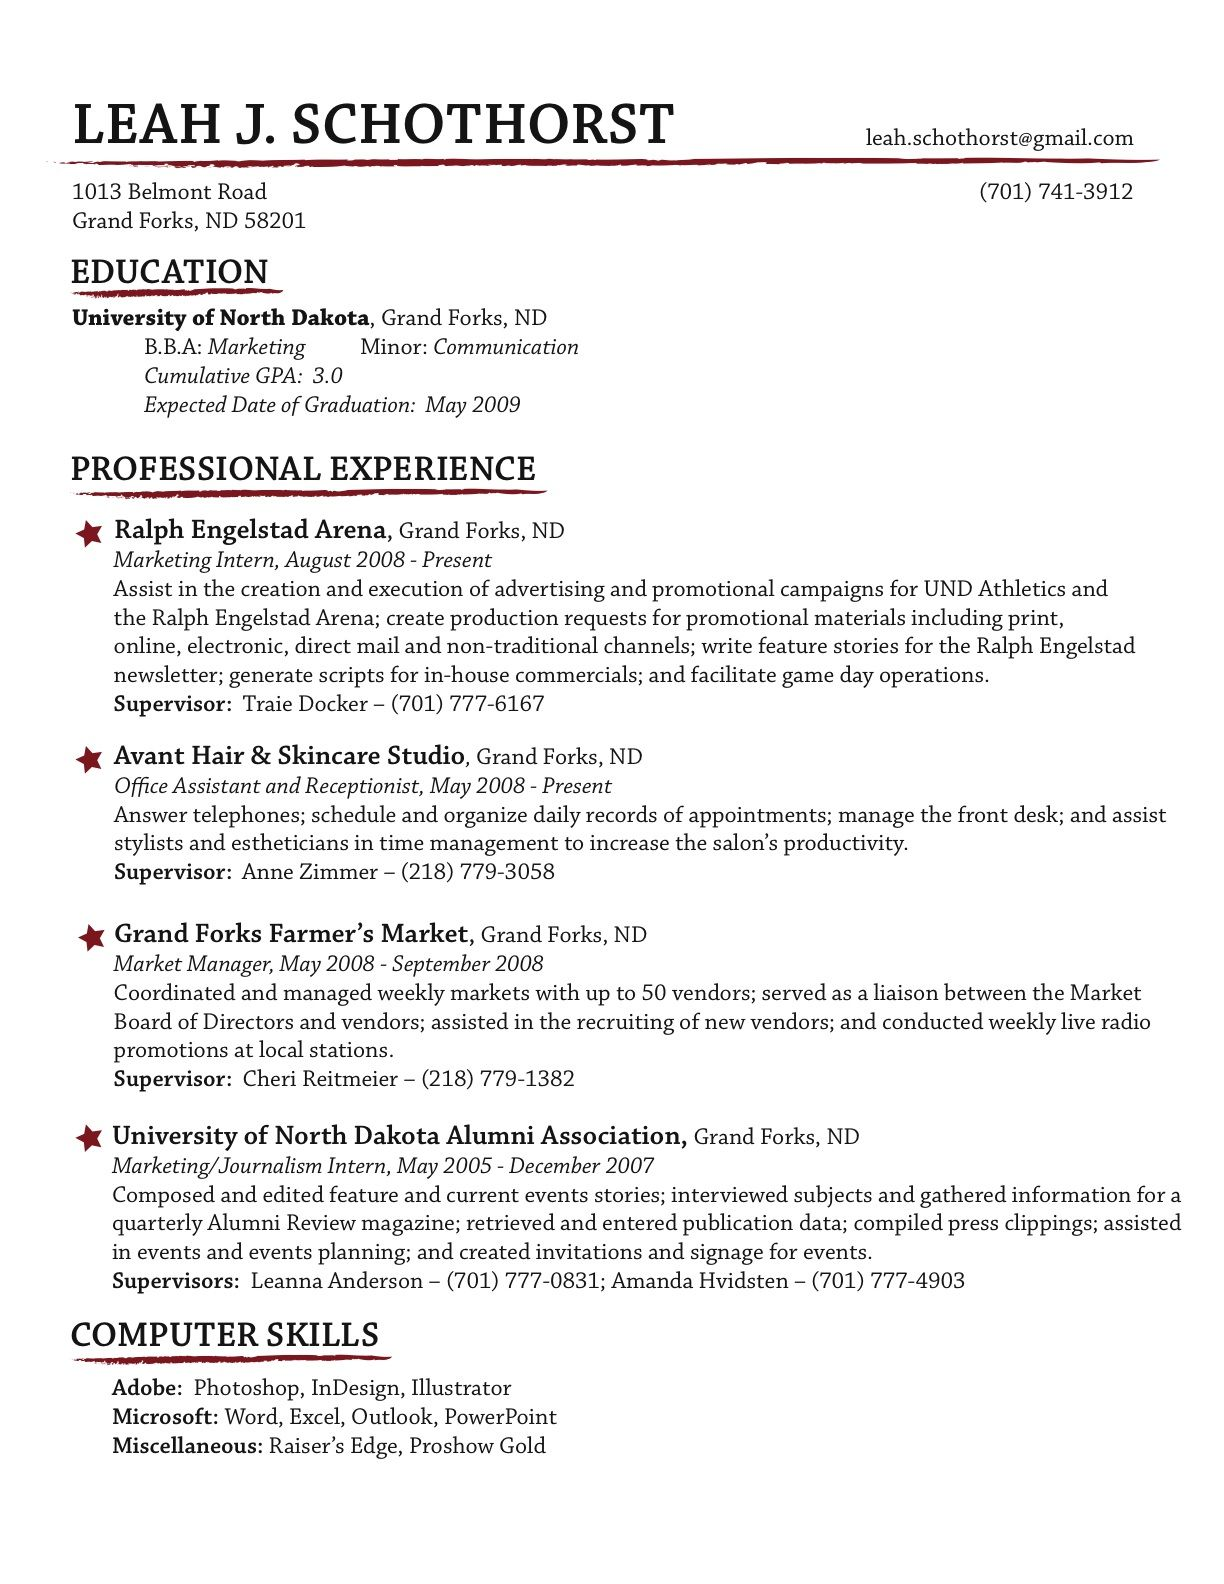 Business Systems Analyst Resume Sample Resume : Make A Resume Website Cover  Letter Or Resume Online .  How To Format Your Resume